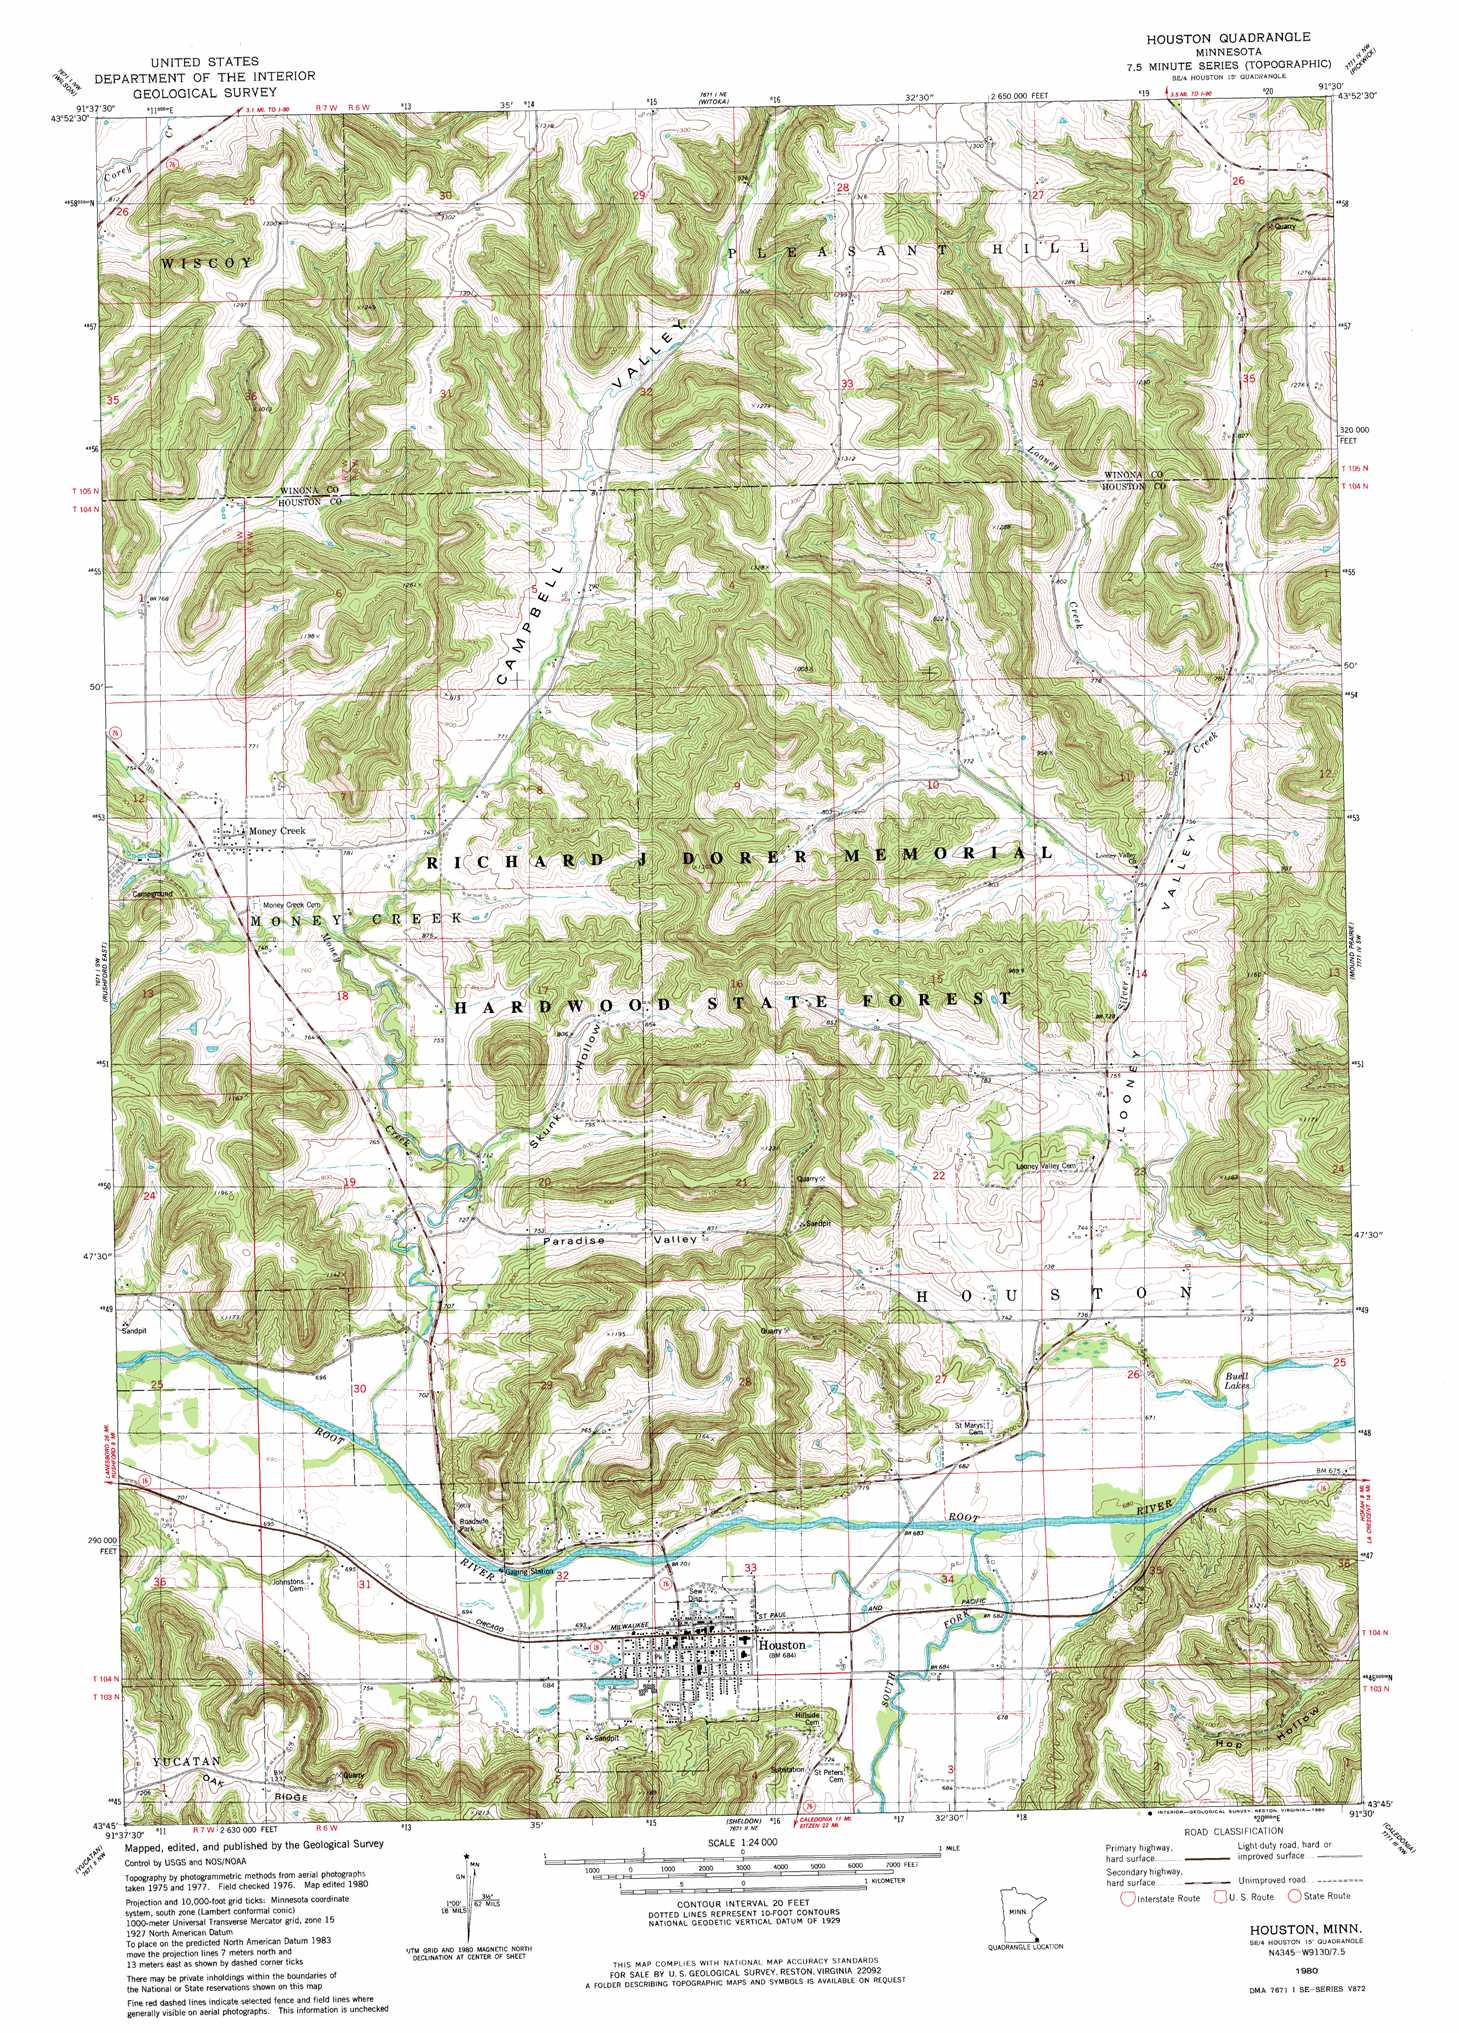 Houston topographic map, MN   USGS Topo Quad 43091g5